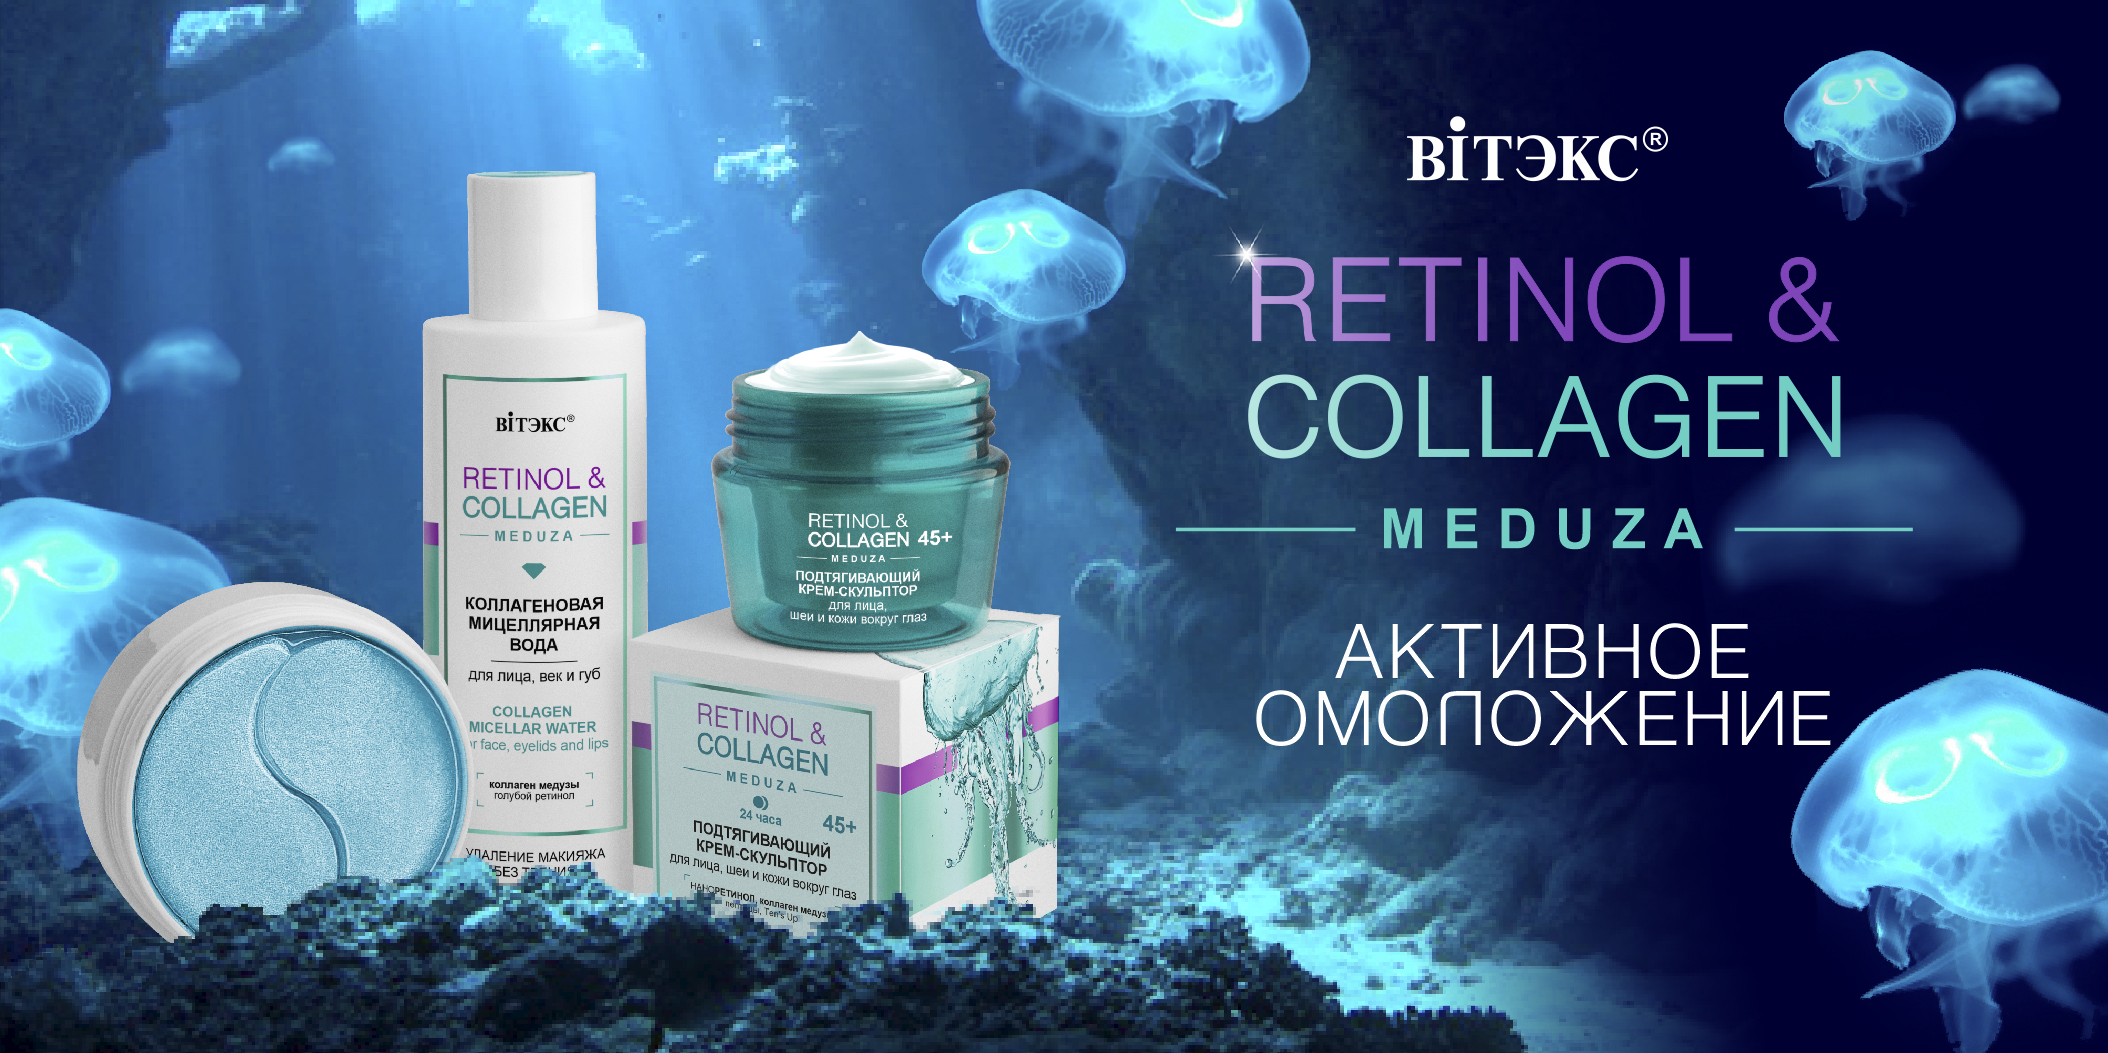 RETINOL & COLLAGEN meduza